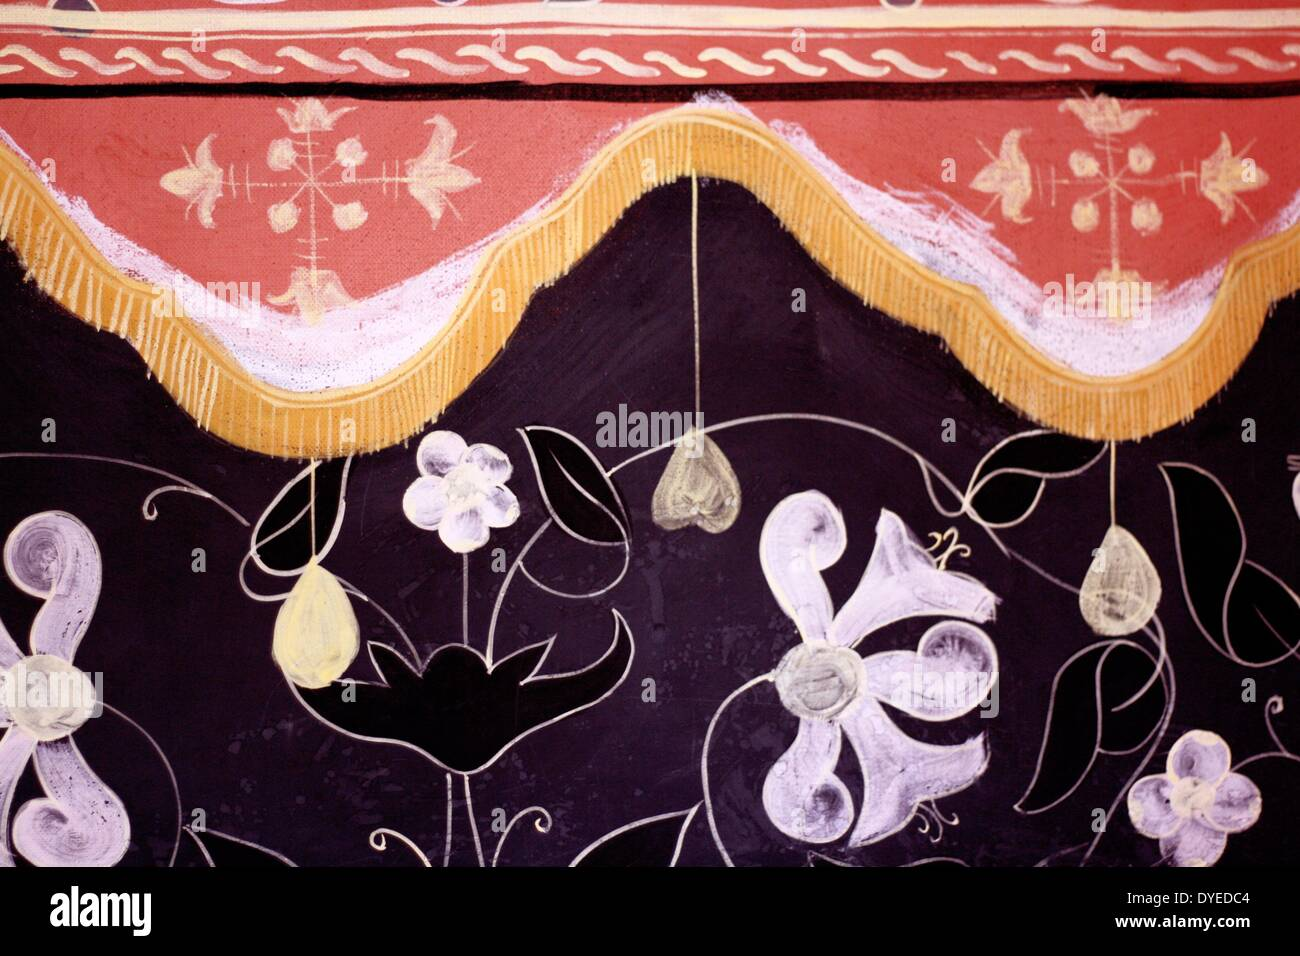 Restored Elizabethan Wall Coverings. - Stock Image